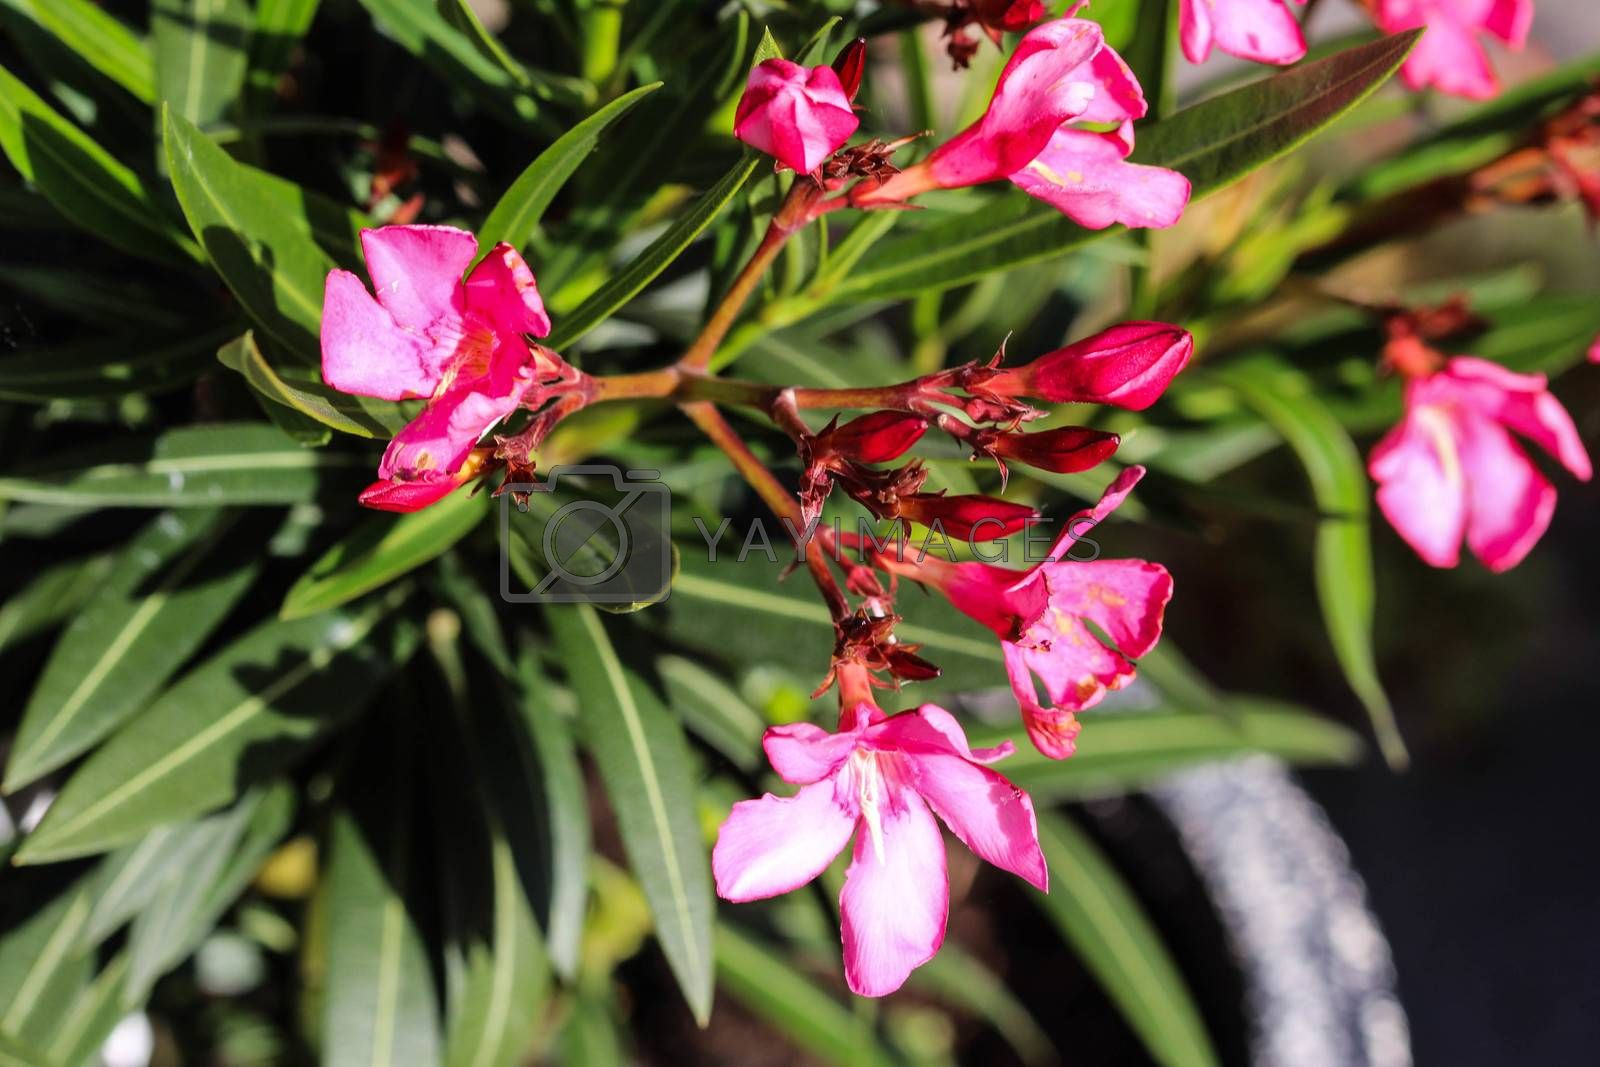 Royalty free image of Nerium oleander flower, most commonly known as nerium or oleander, blooming in spring in the garden by michaelmeijer